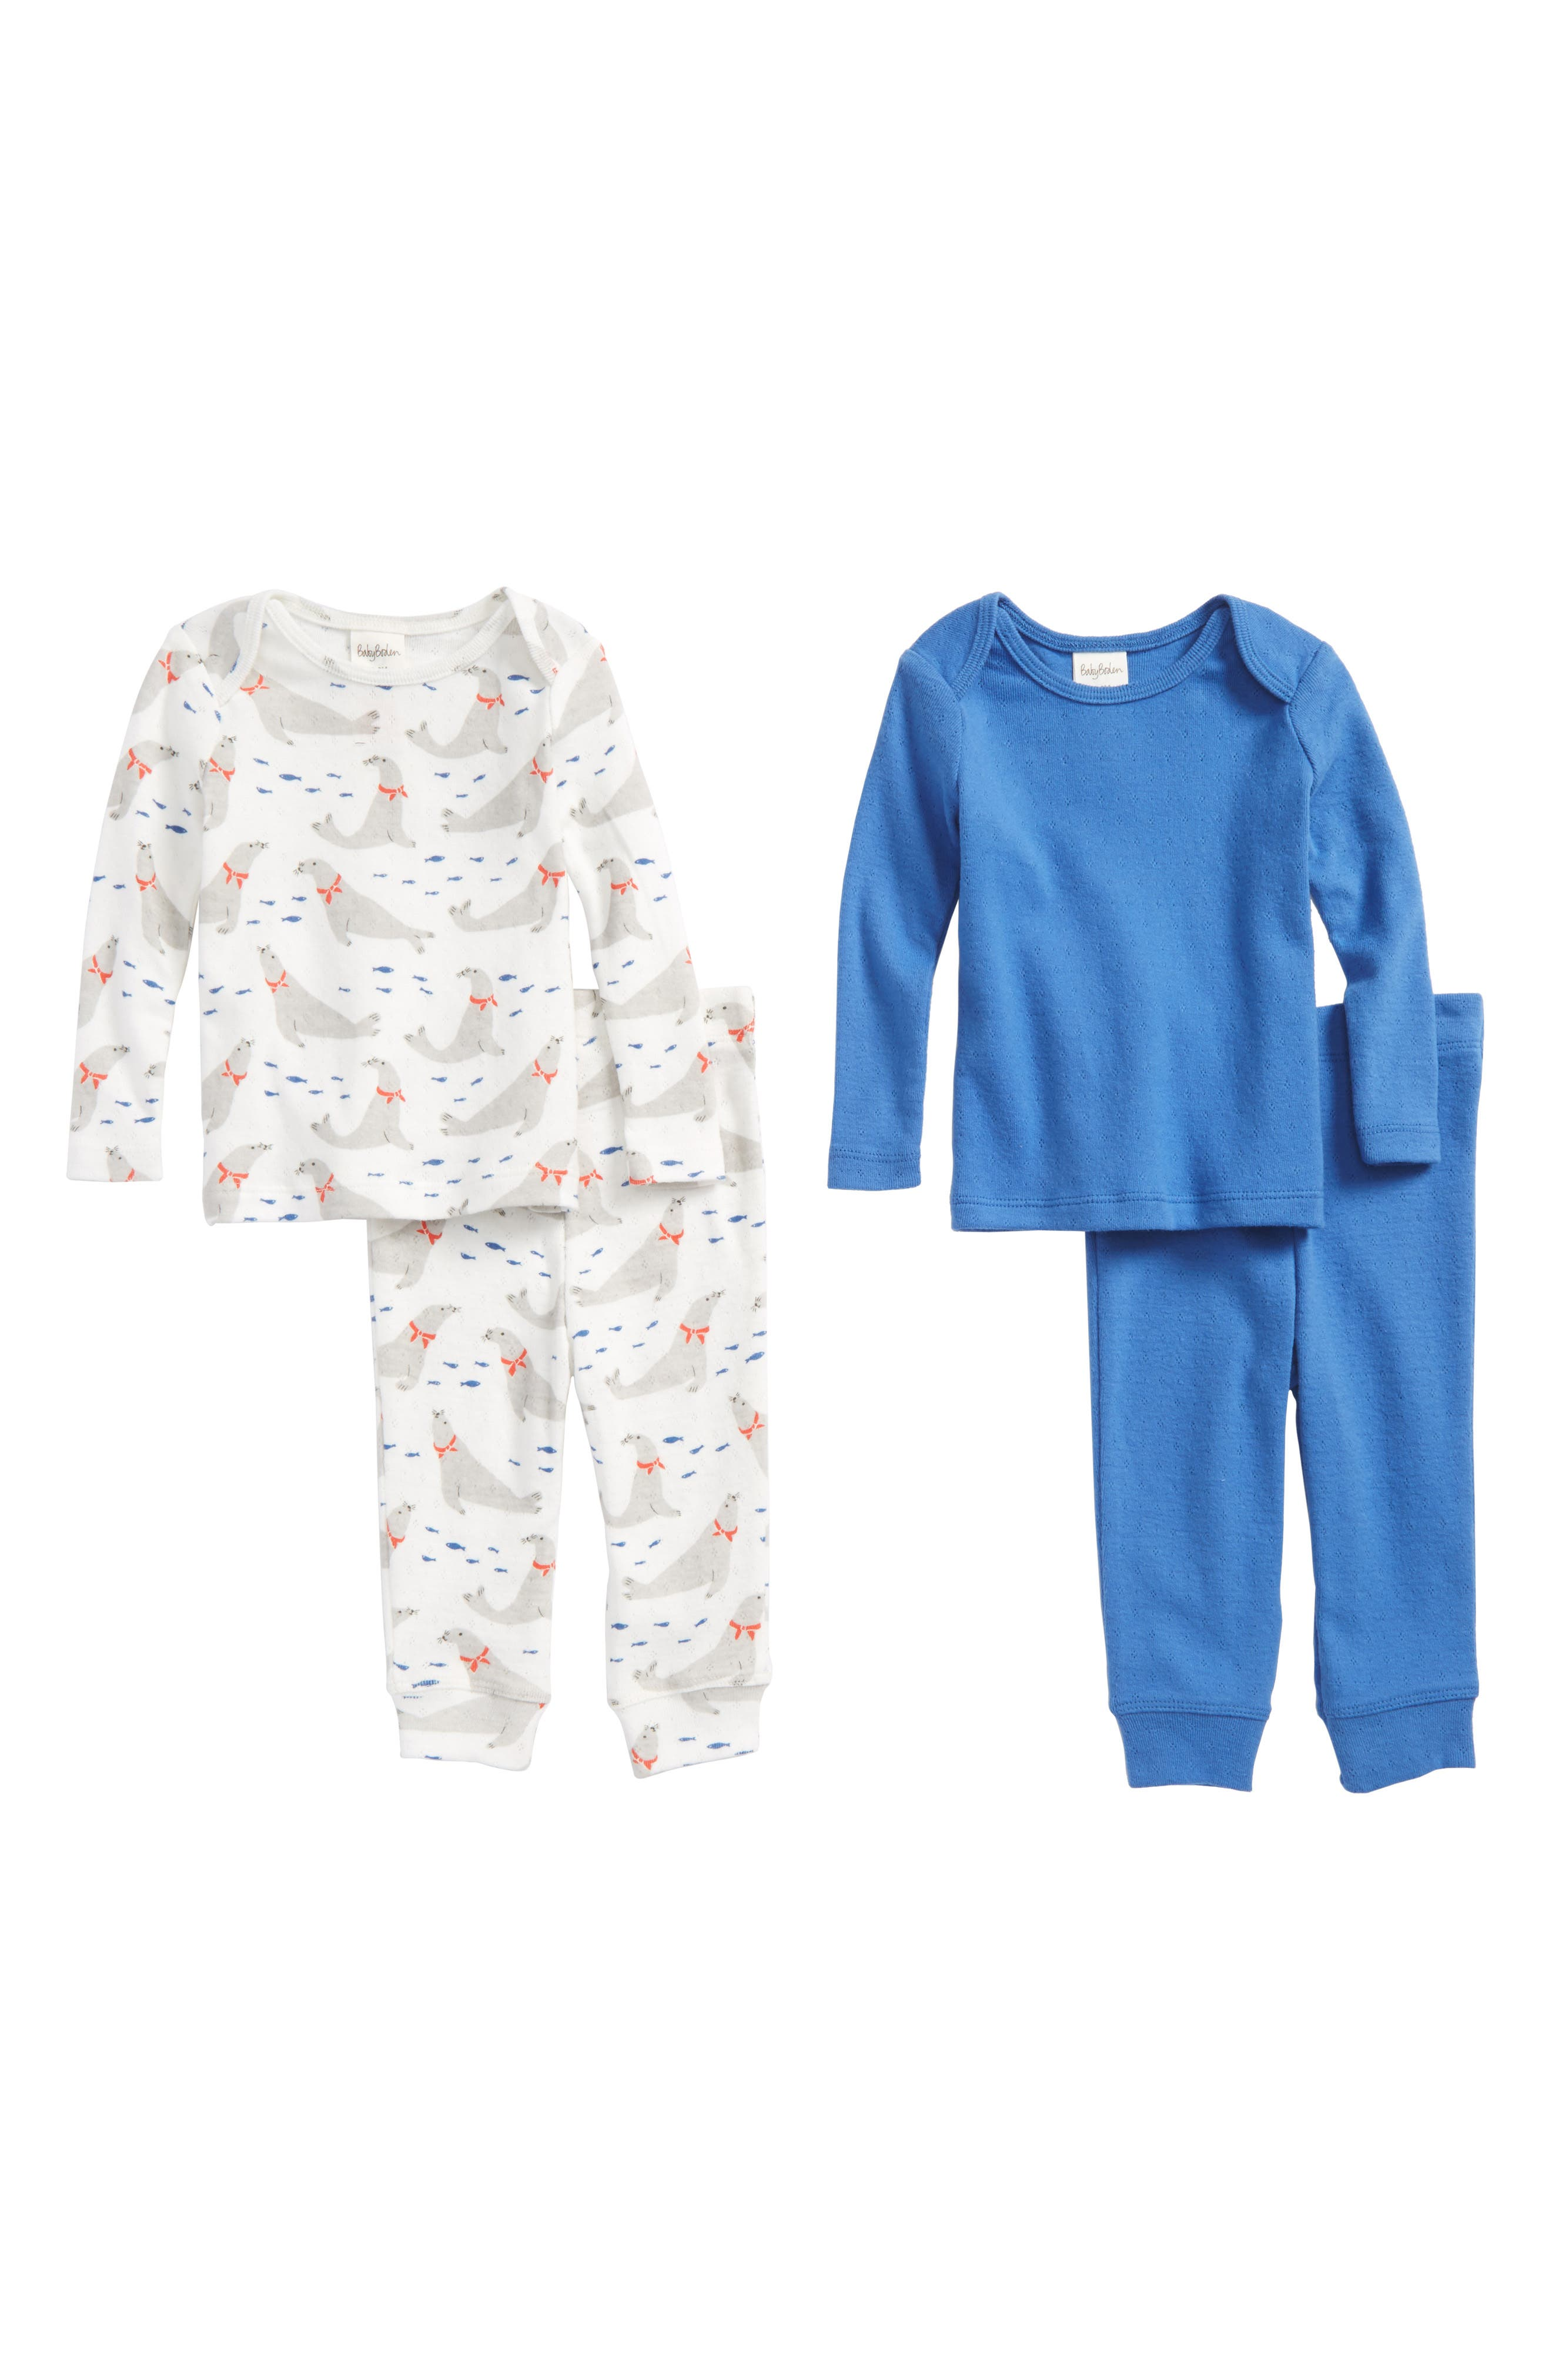 Pointelle 4-Piece Fitted Pajama Set,                         Main,                         color,